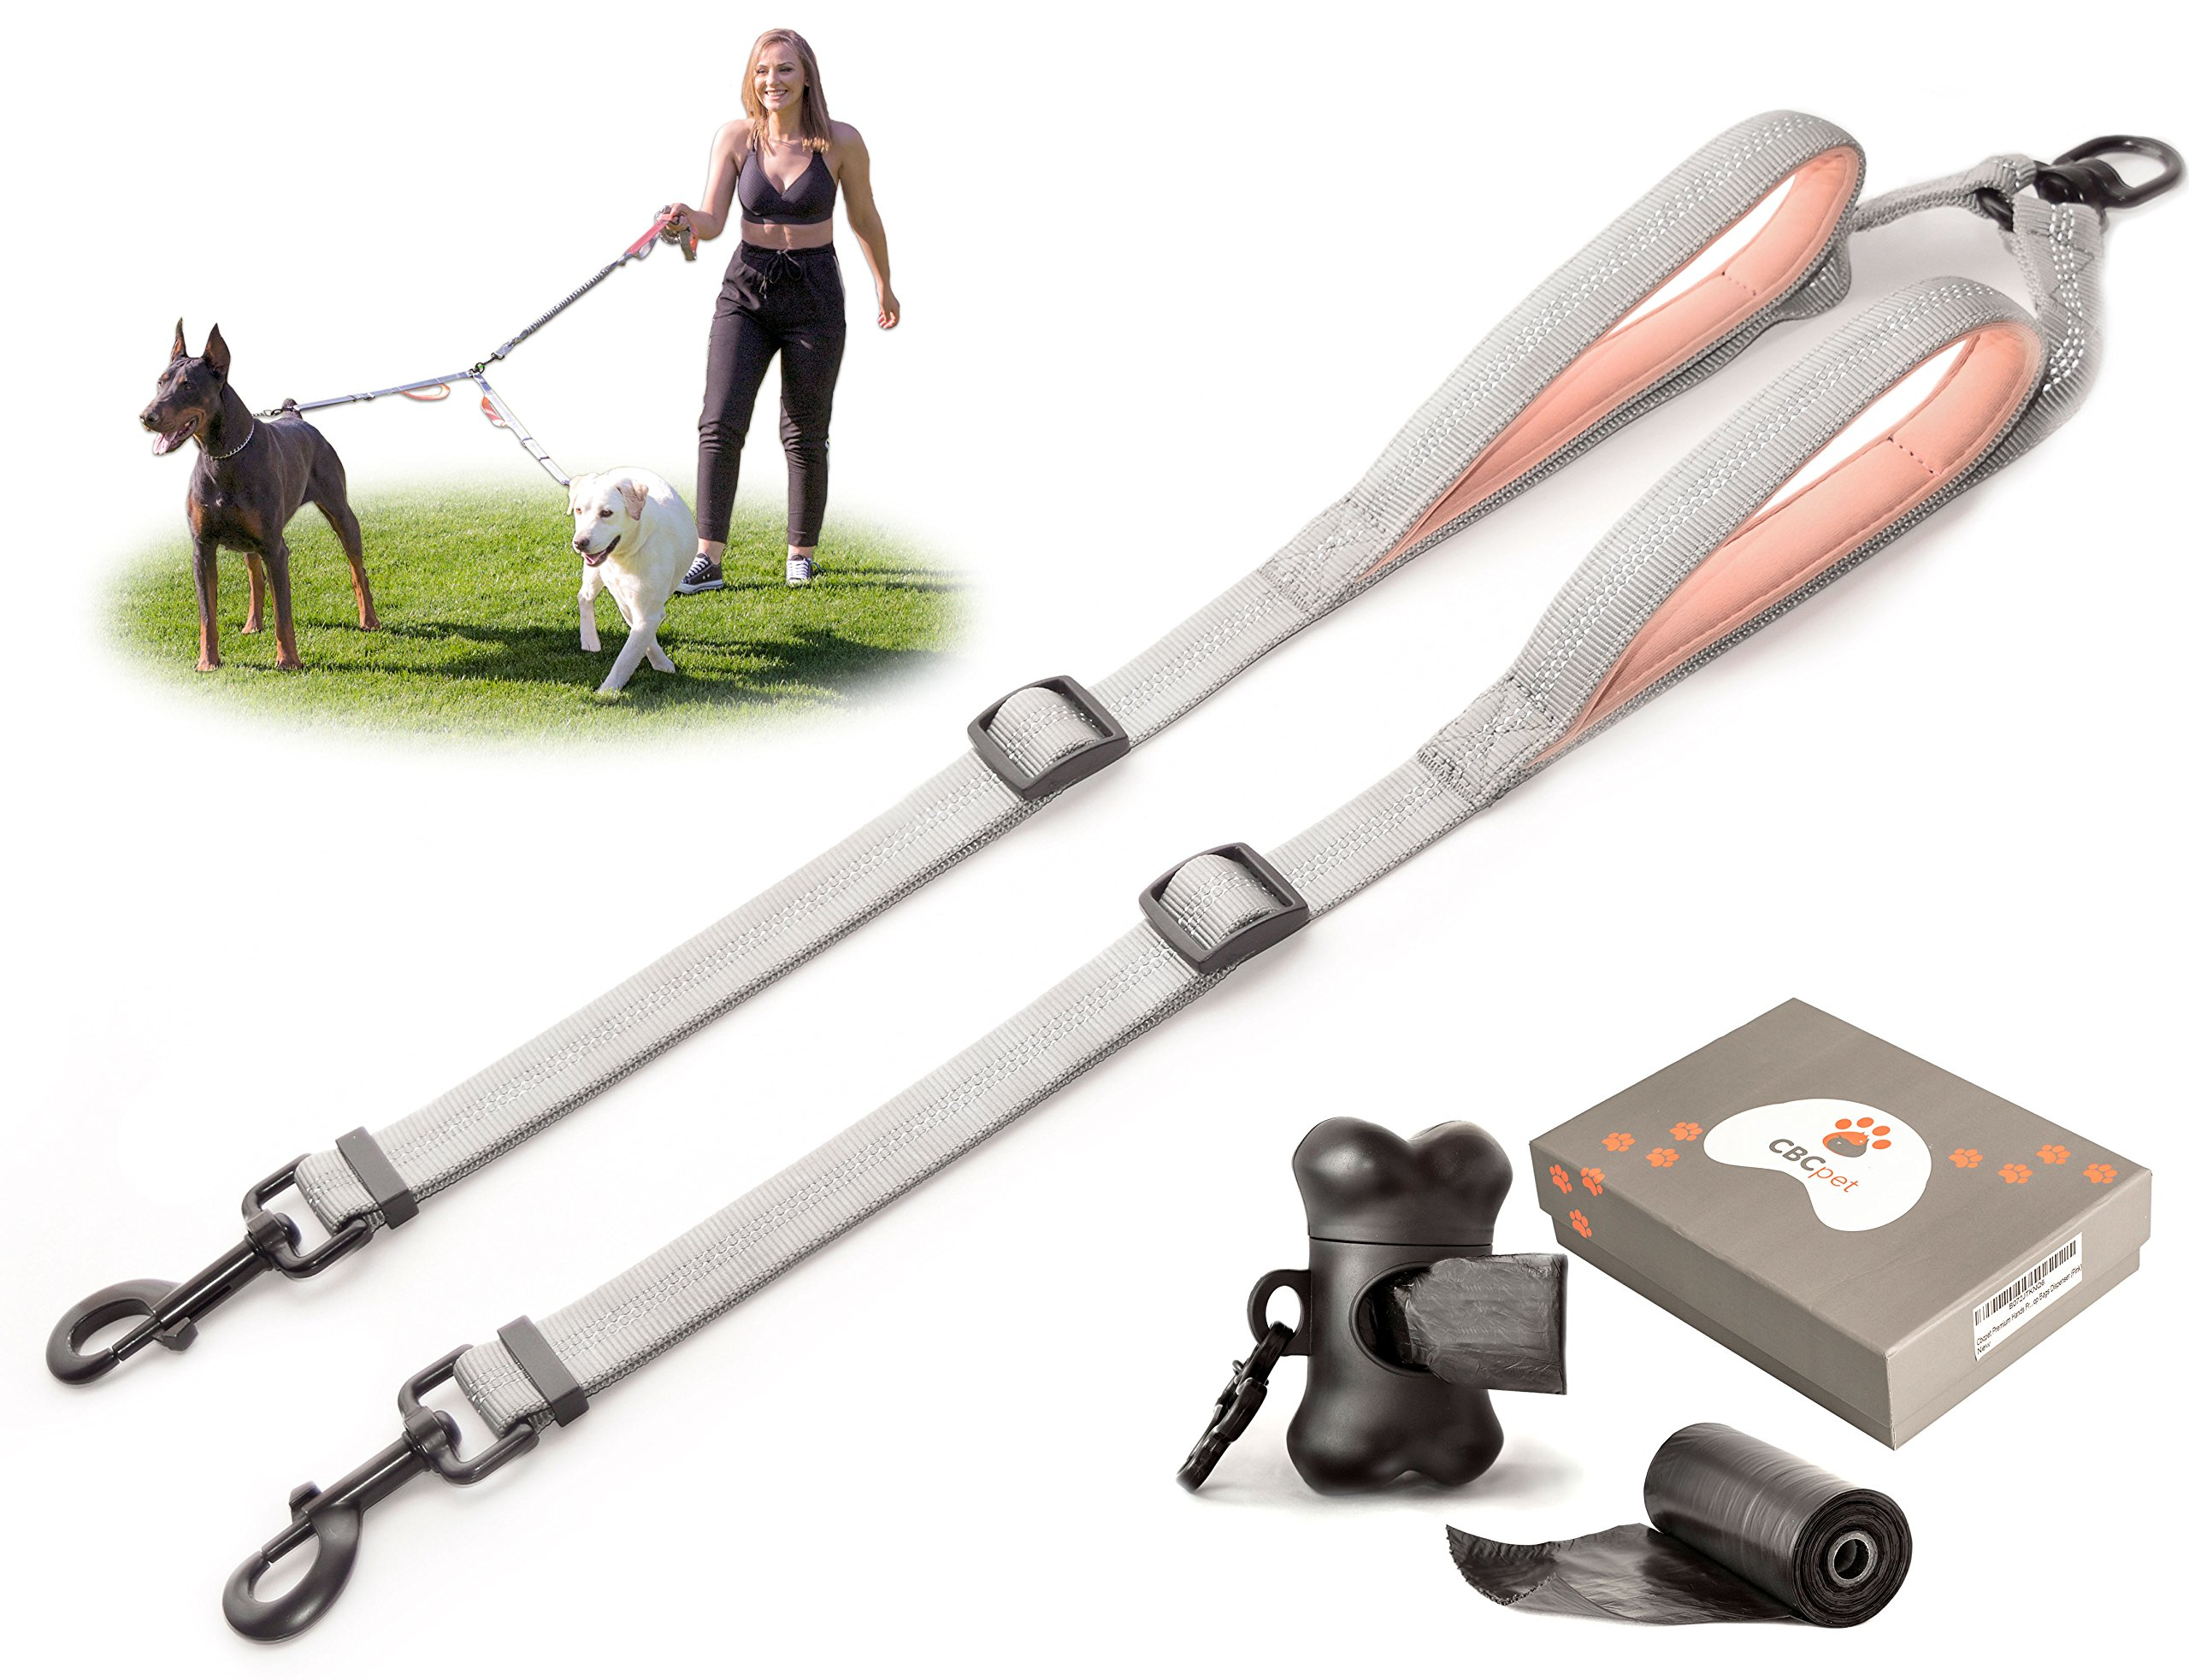 CBCpet Double Dog Leash for Running/Walking/ Hiking with Adjustable Splitter and Strong Dual Handles, Tangle-Free, for 2 Medium or Large Dogs & Poop Bags Dispenser Kit